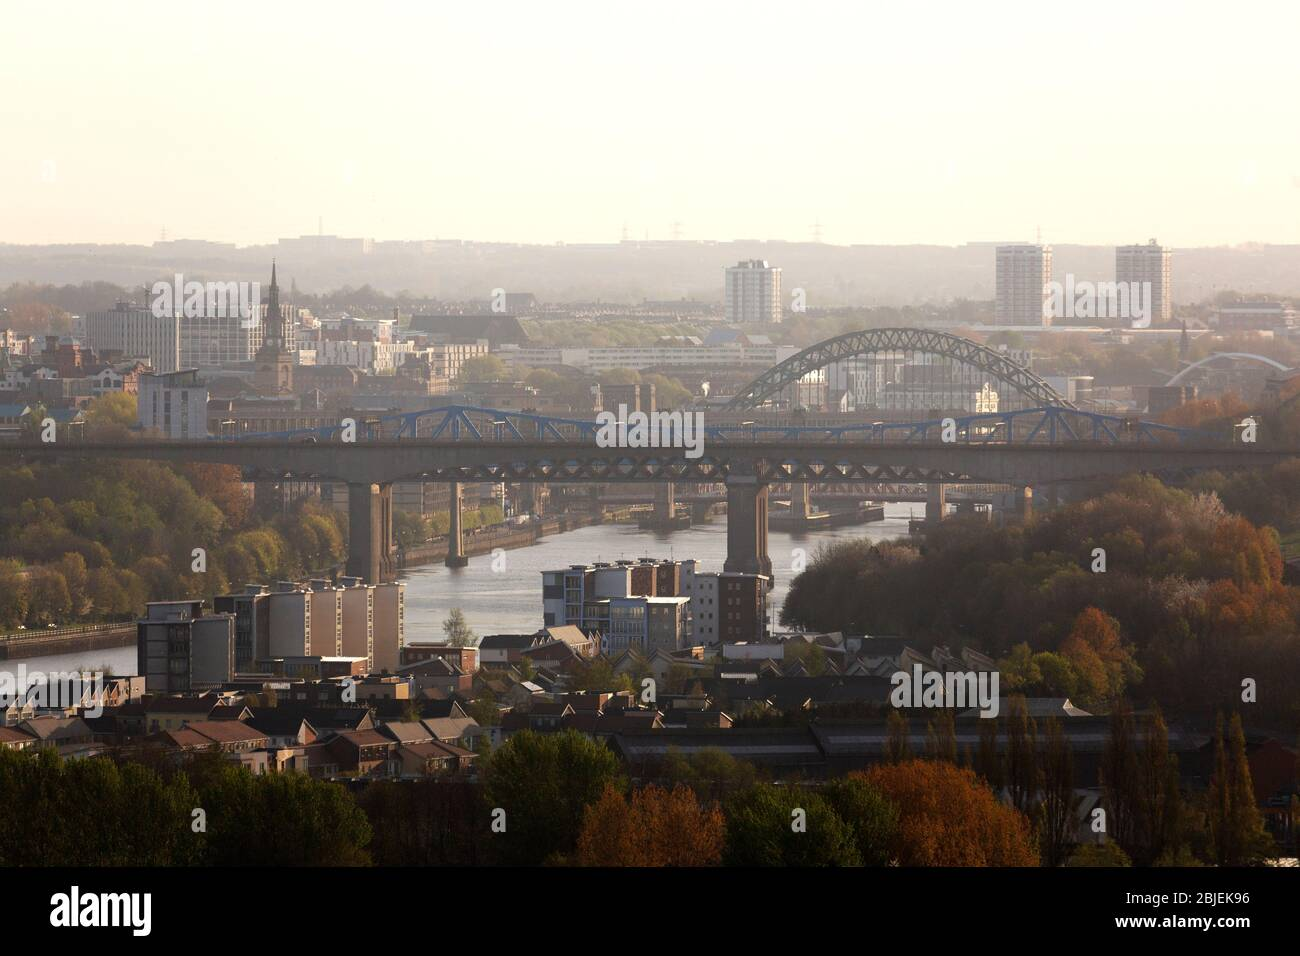 A hazy morning in Newcastle upon Tyne, England. The Redheugh Bridge spans the River Tyne between Newcastle and Gateshead. Stock Photo